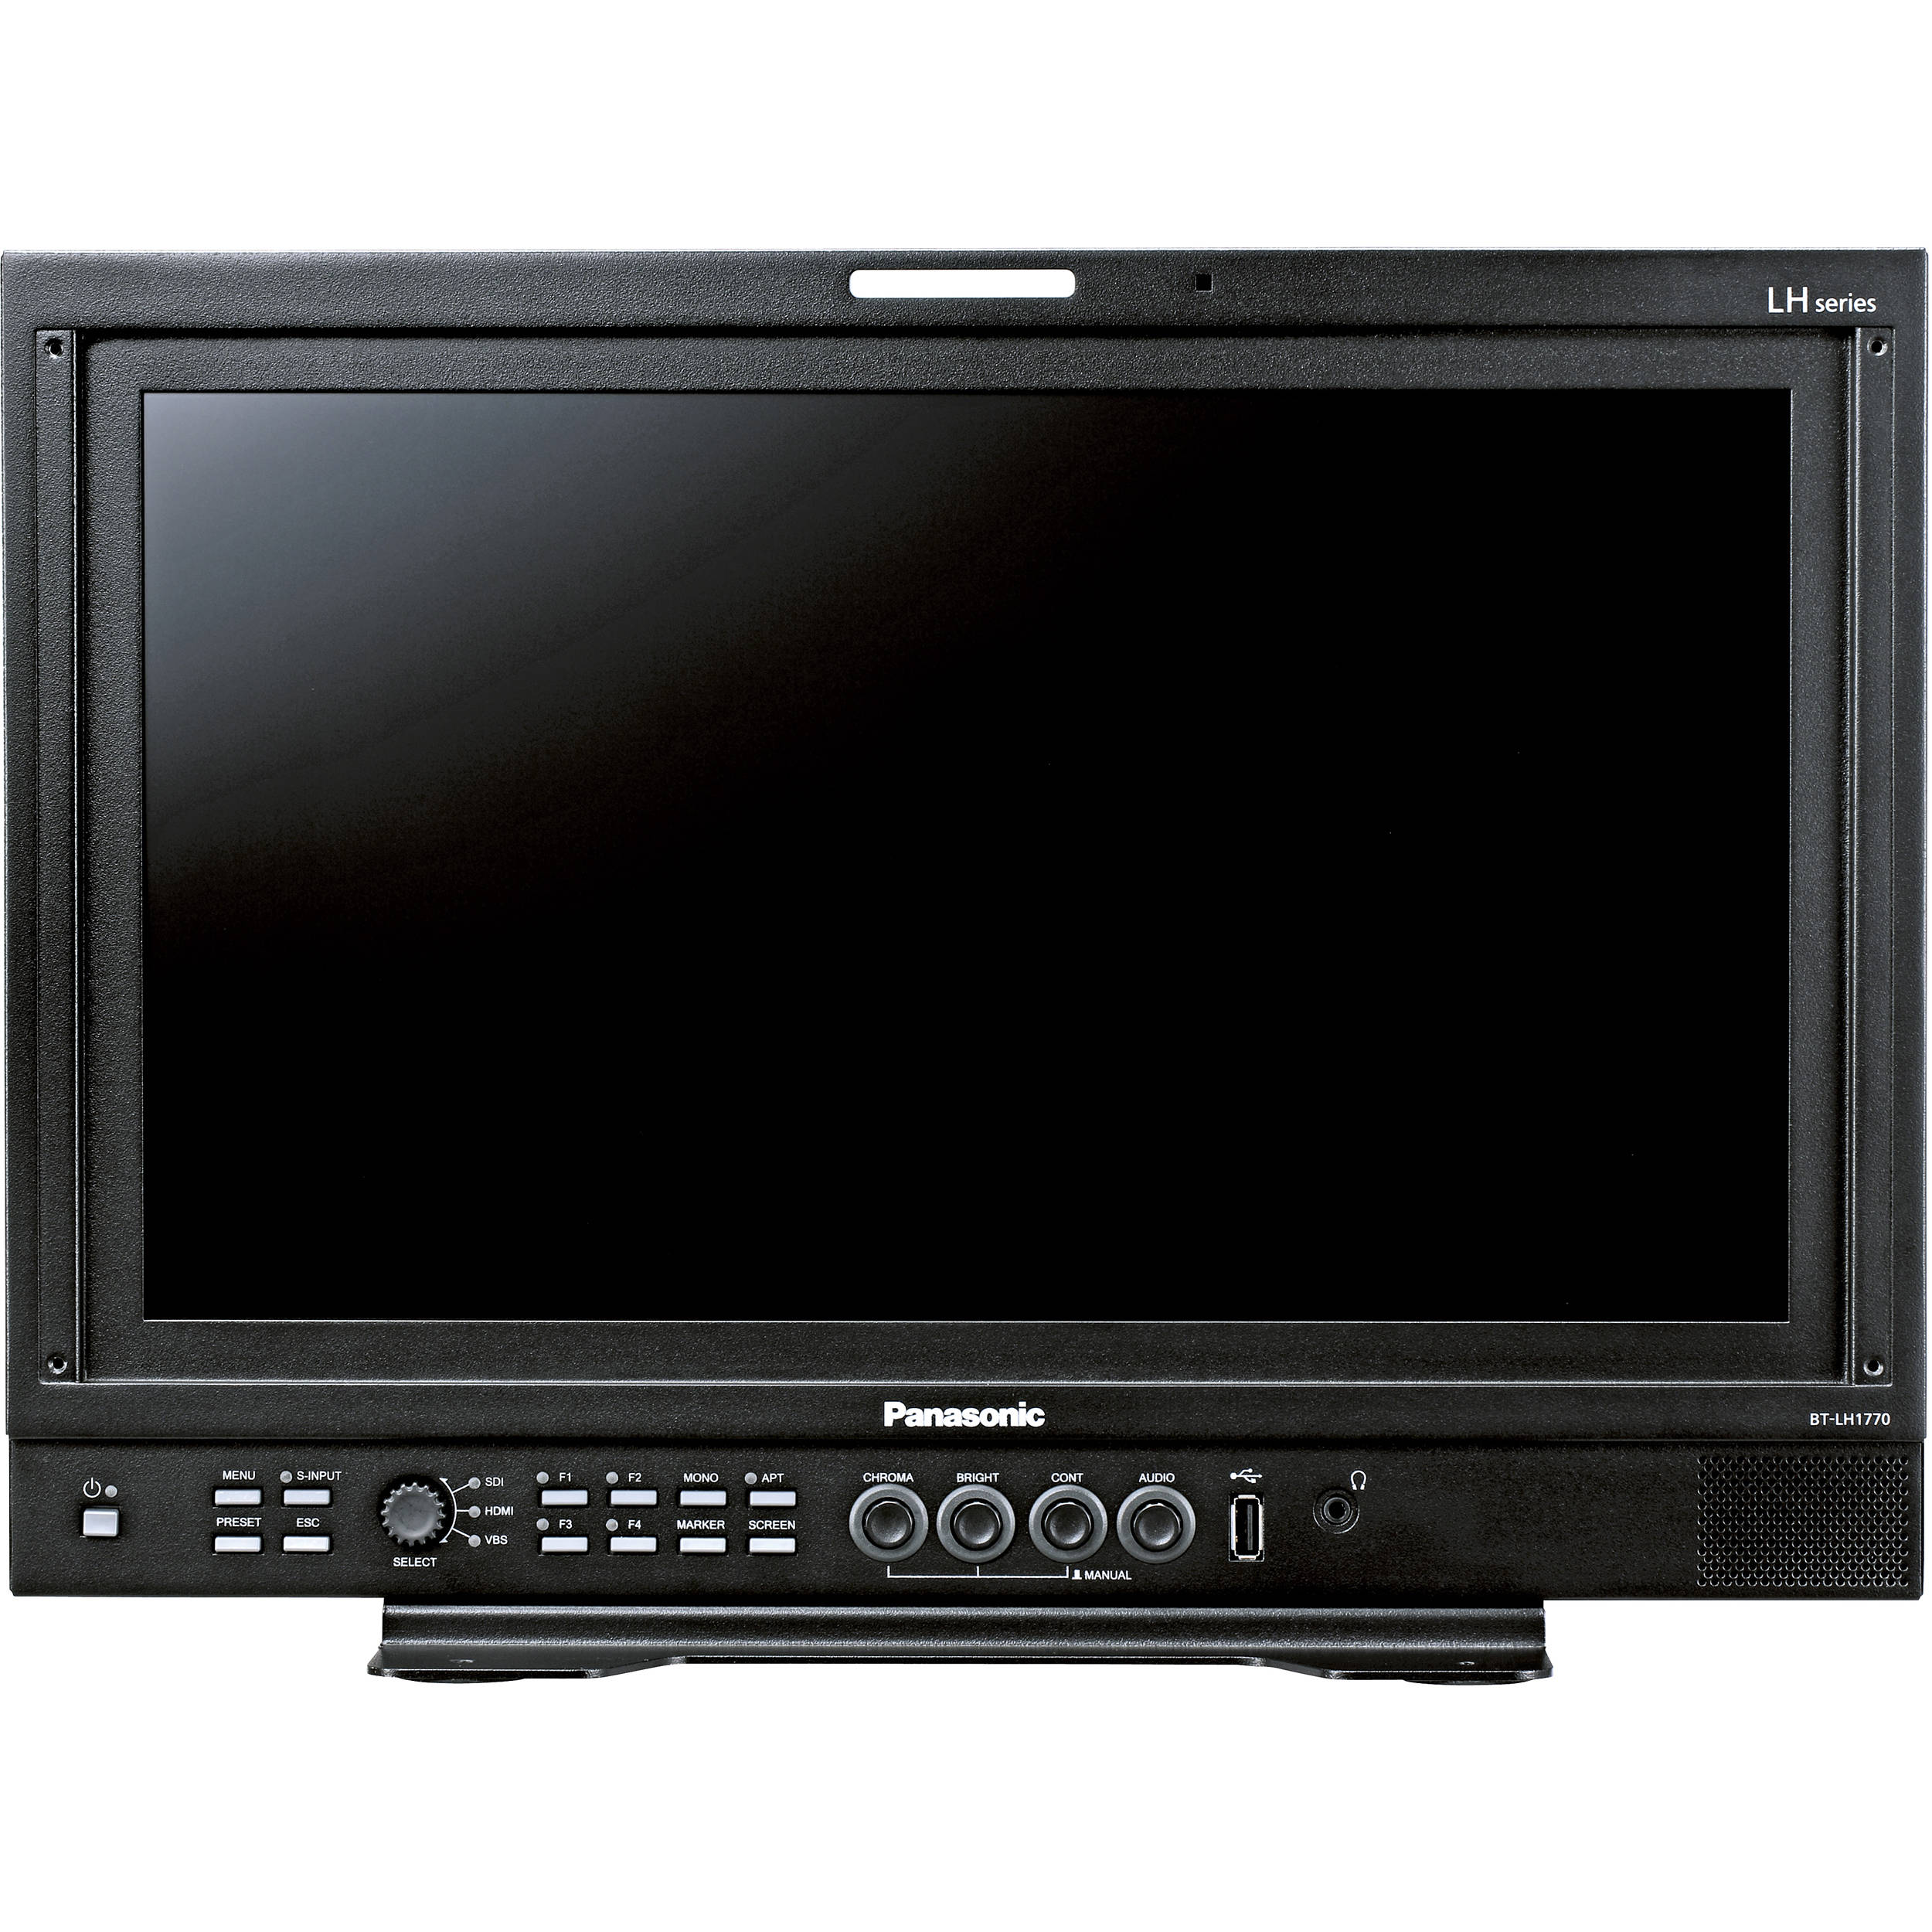 PANASONIC MONITOR DRIVERS FOR WINDOWS 7